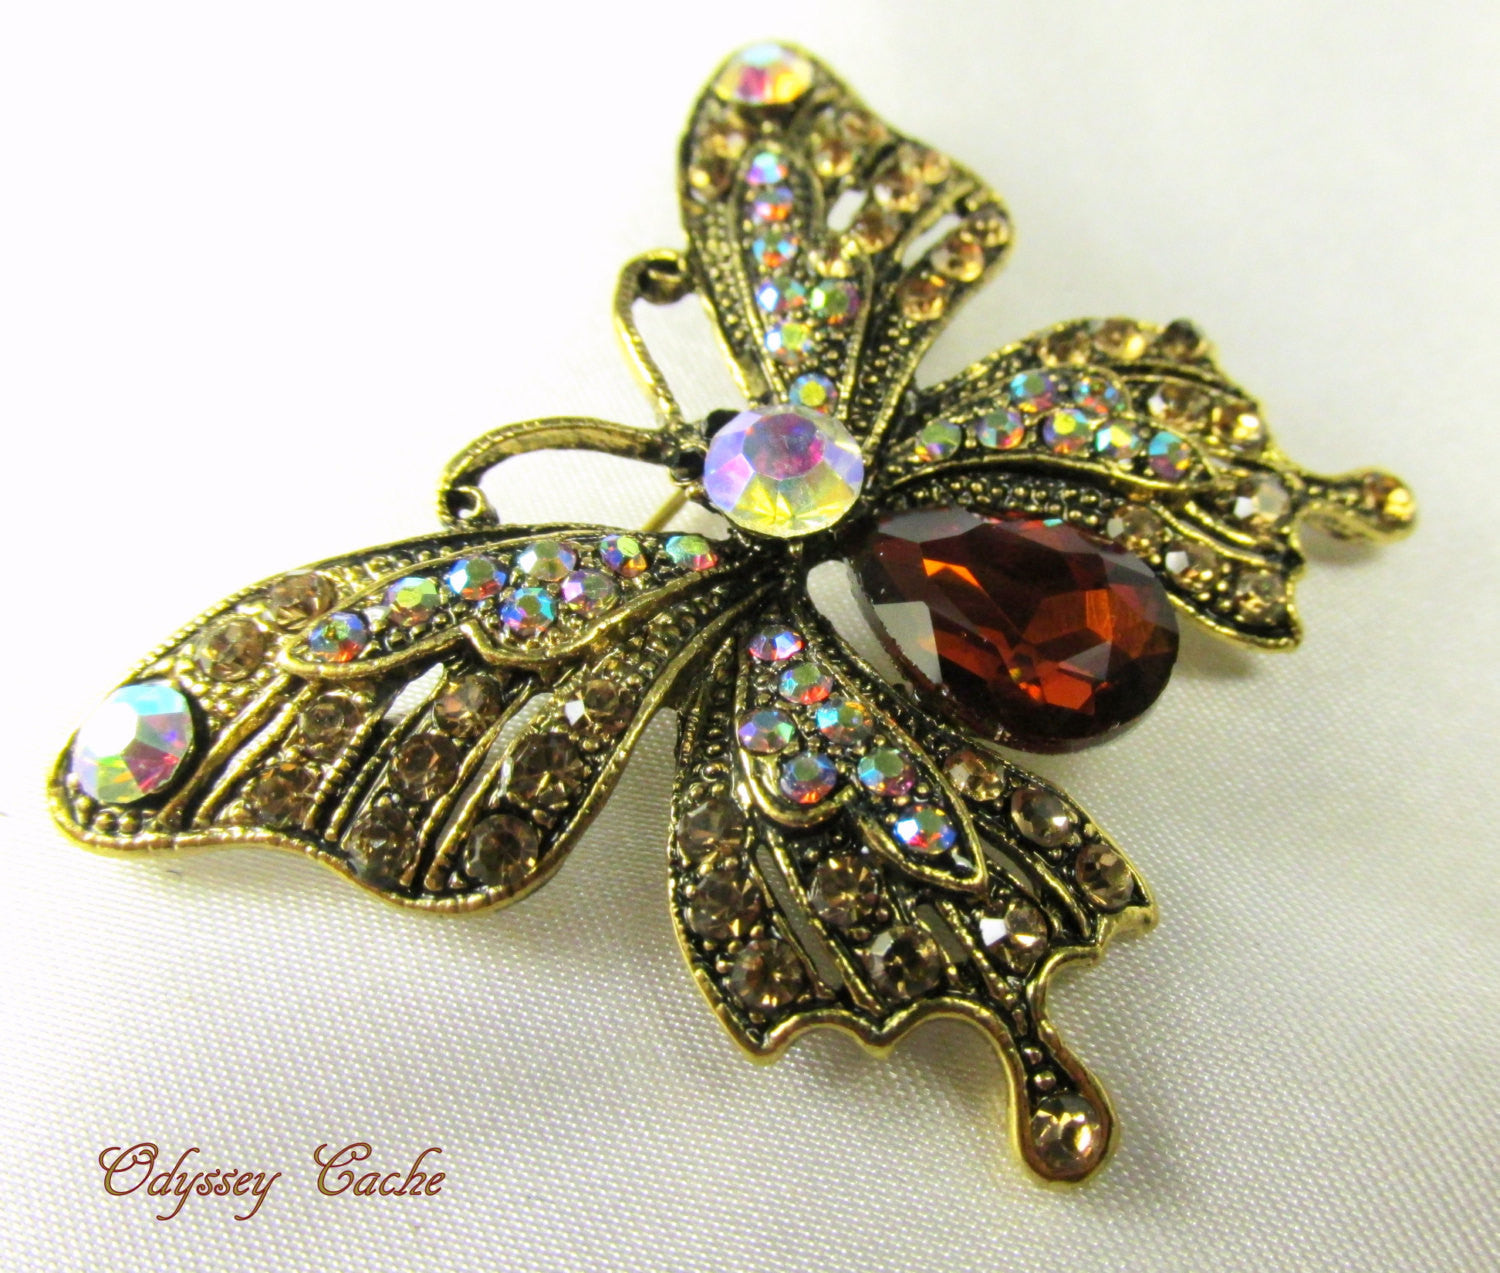 Butterfly Brooch in Topaz, Crystal AB and Antique Gold - Odyssey Cache - 4